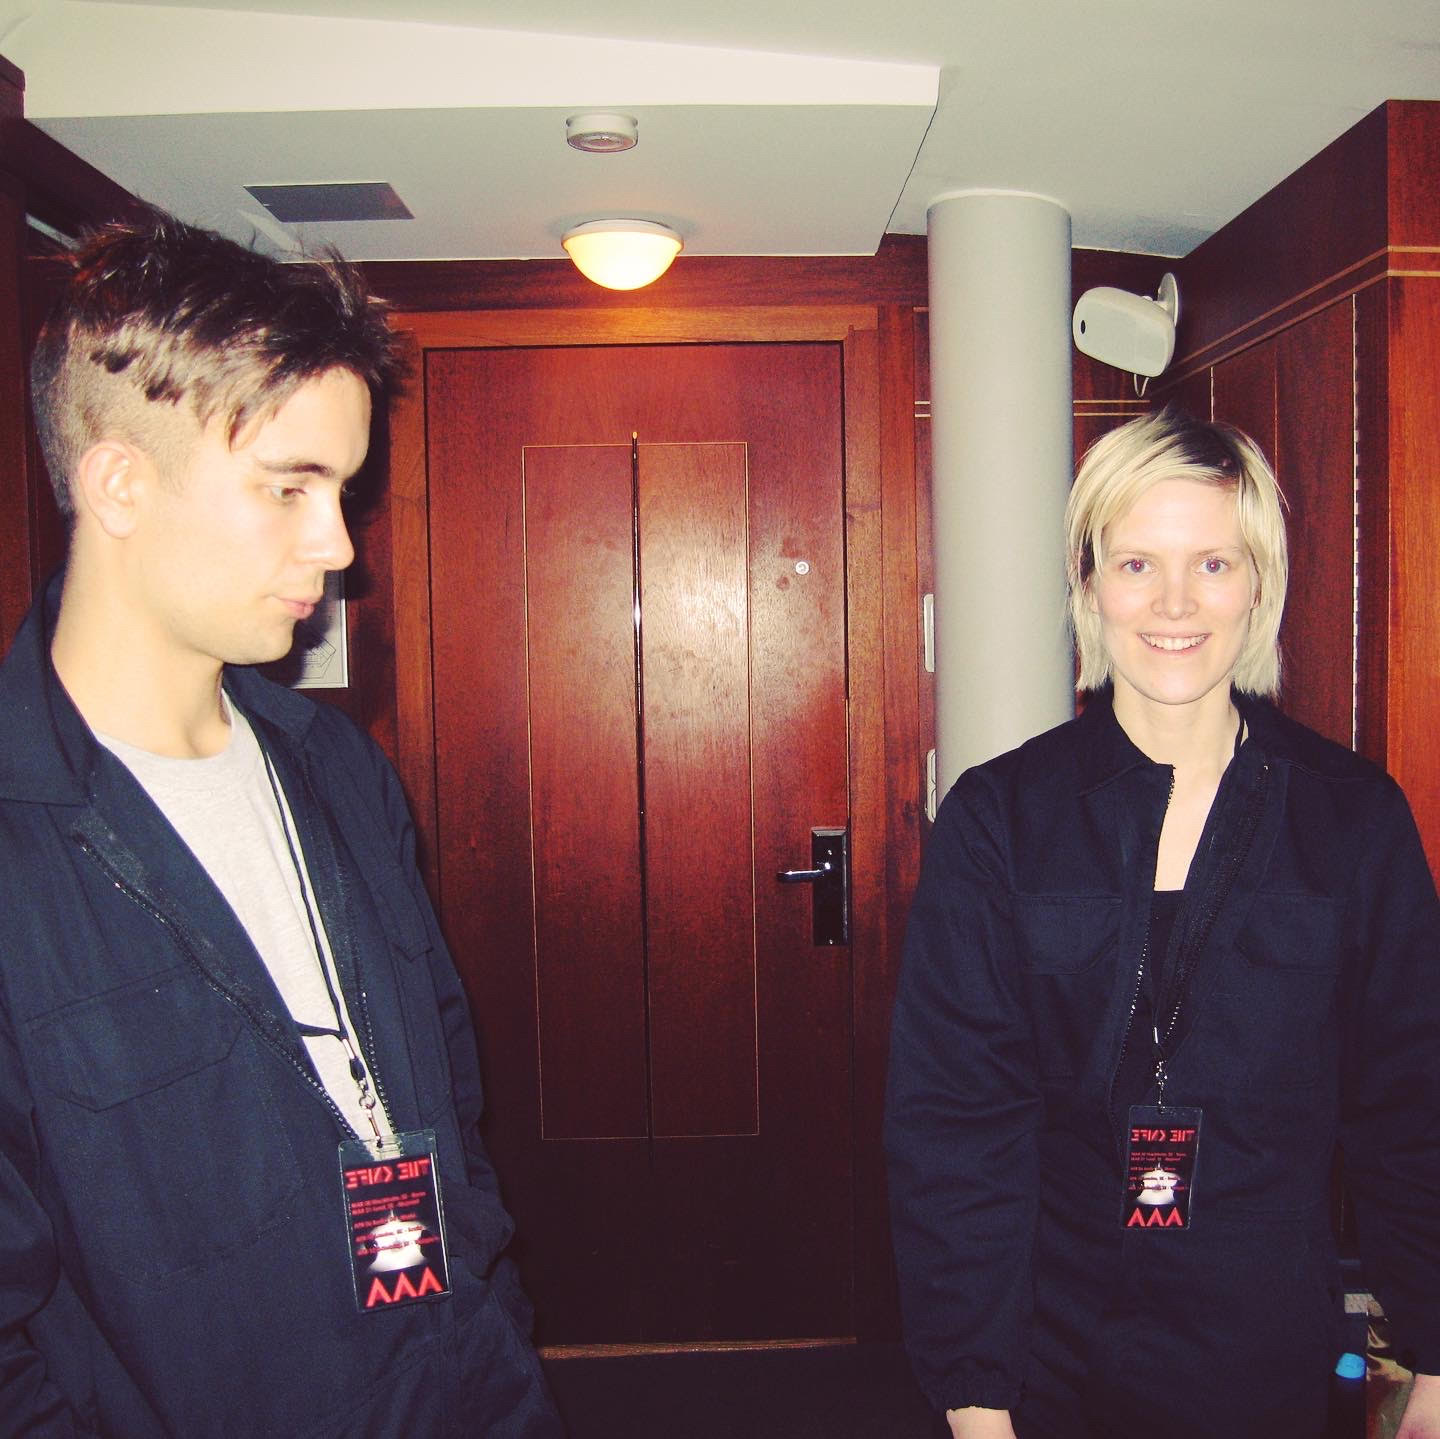 Olof standing side on and Karin facing the camera smiling, both dressed in dark blue boiler suits.